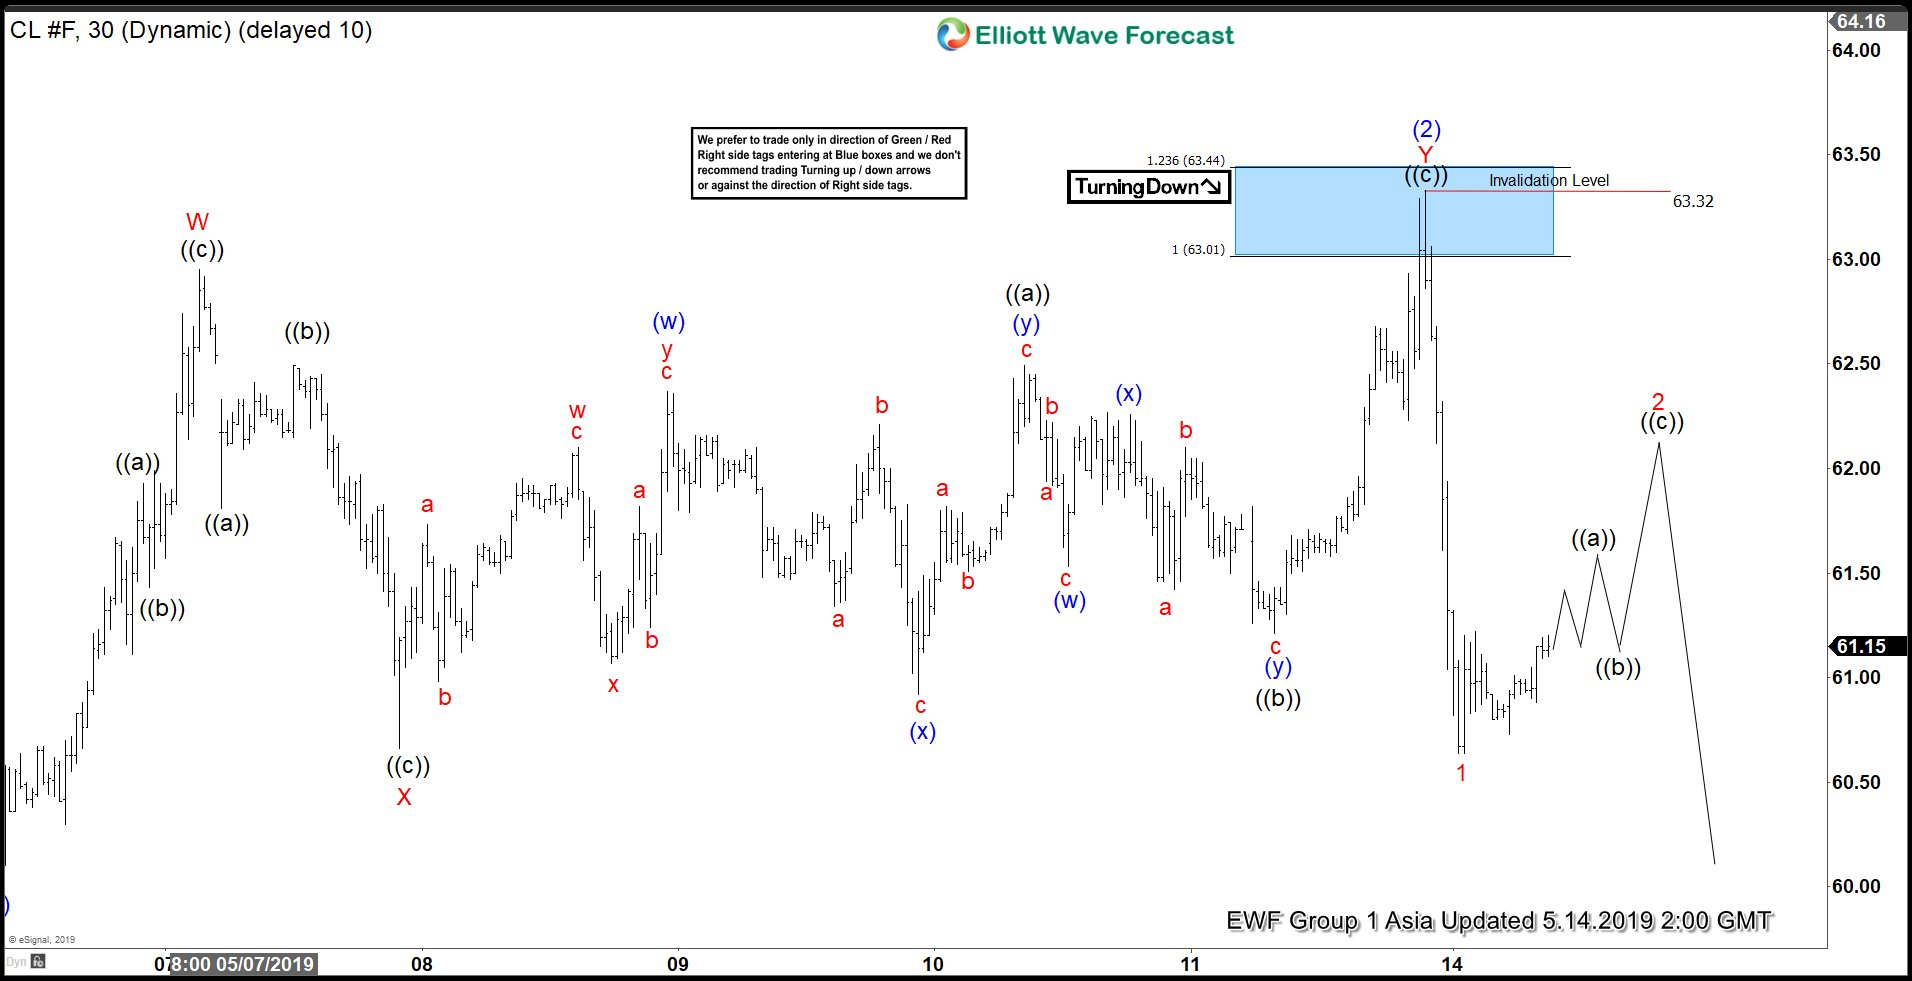 Elliott Wave View Calling for More Downside in Oil